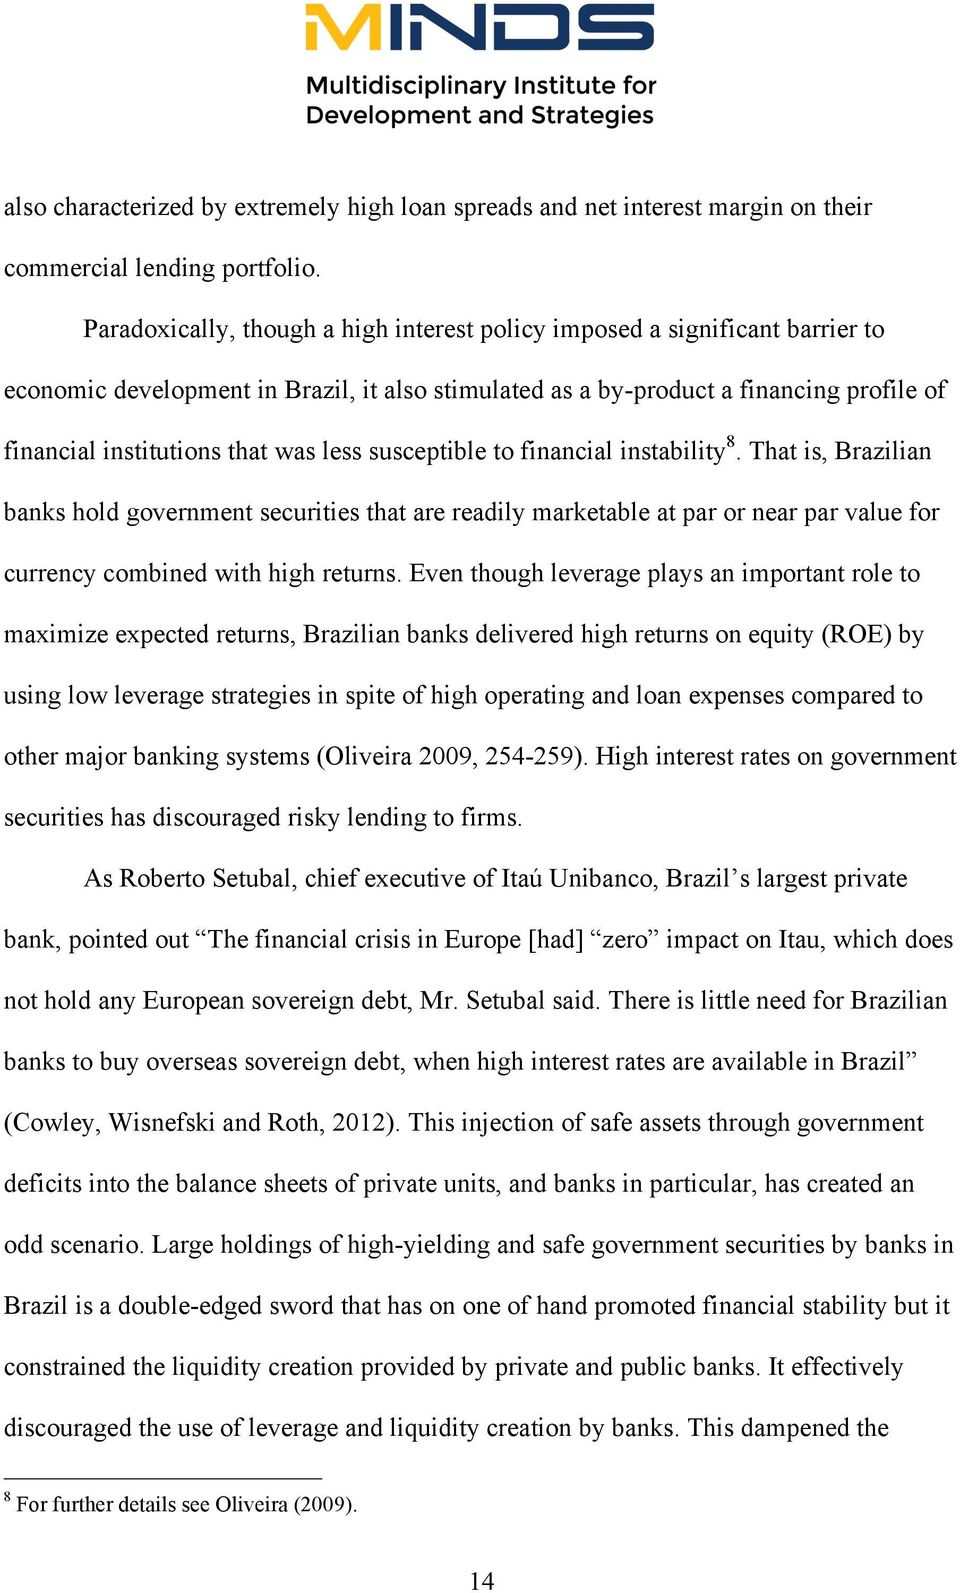 less susceptible to financial instability8. That is, Brazilian banks hold government securities that are readily marketable at par or near par value for currency combined with high returns.